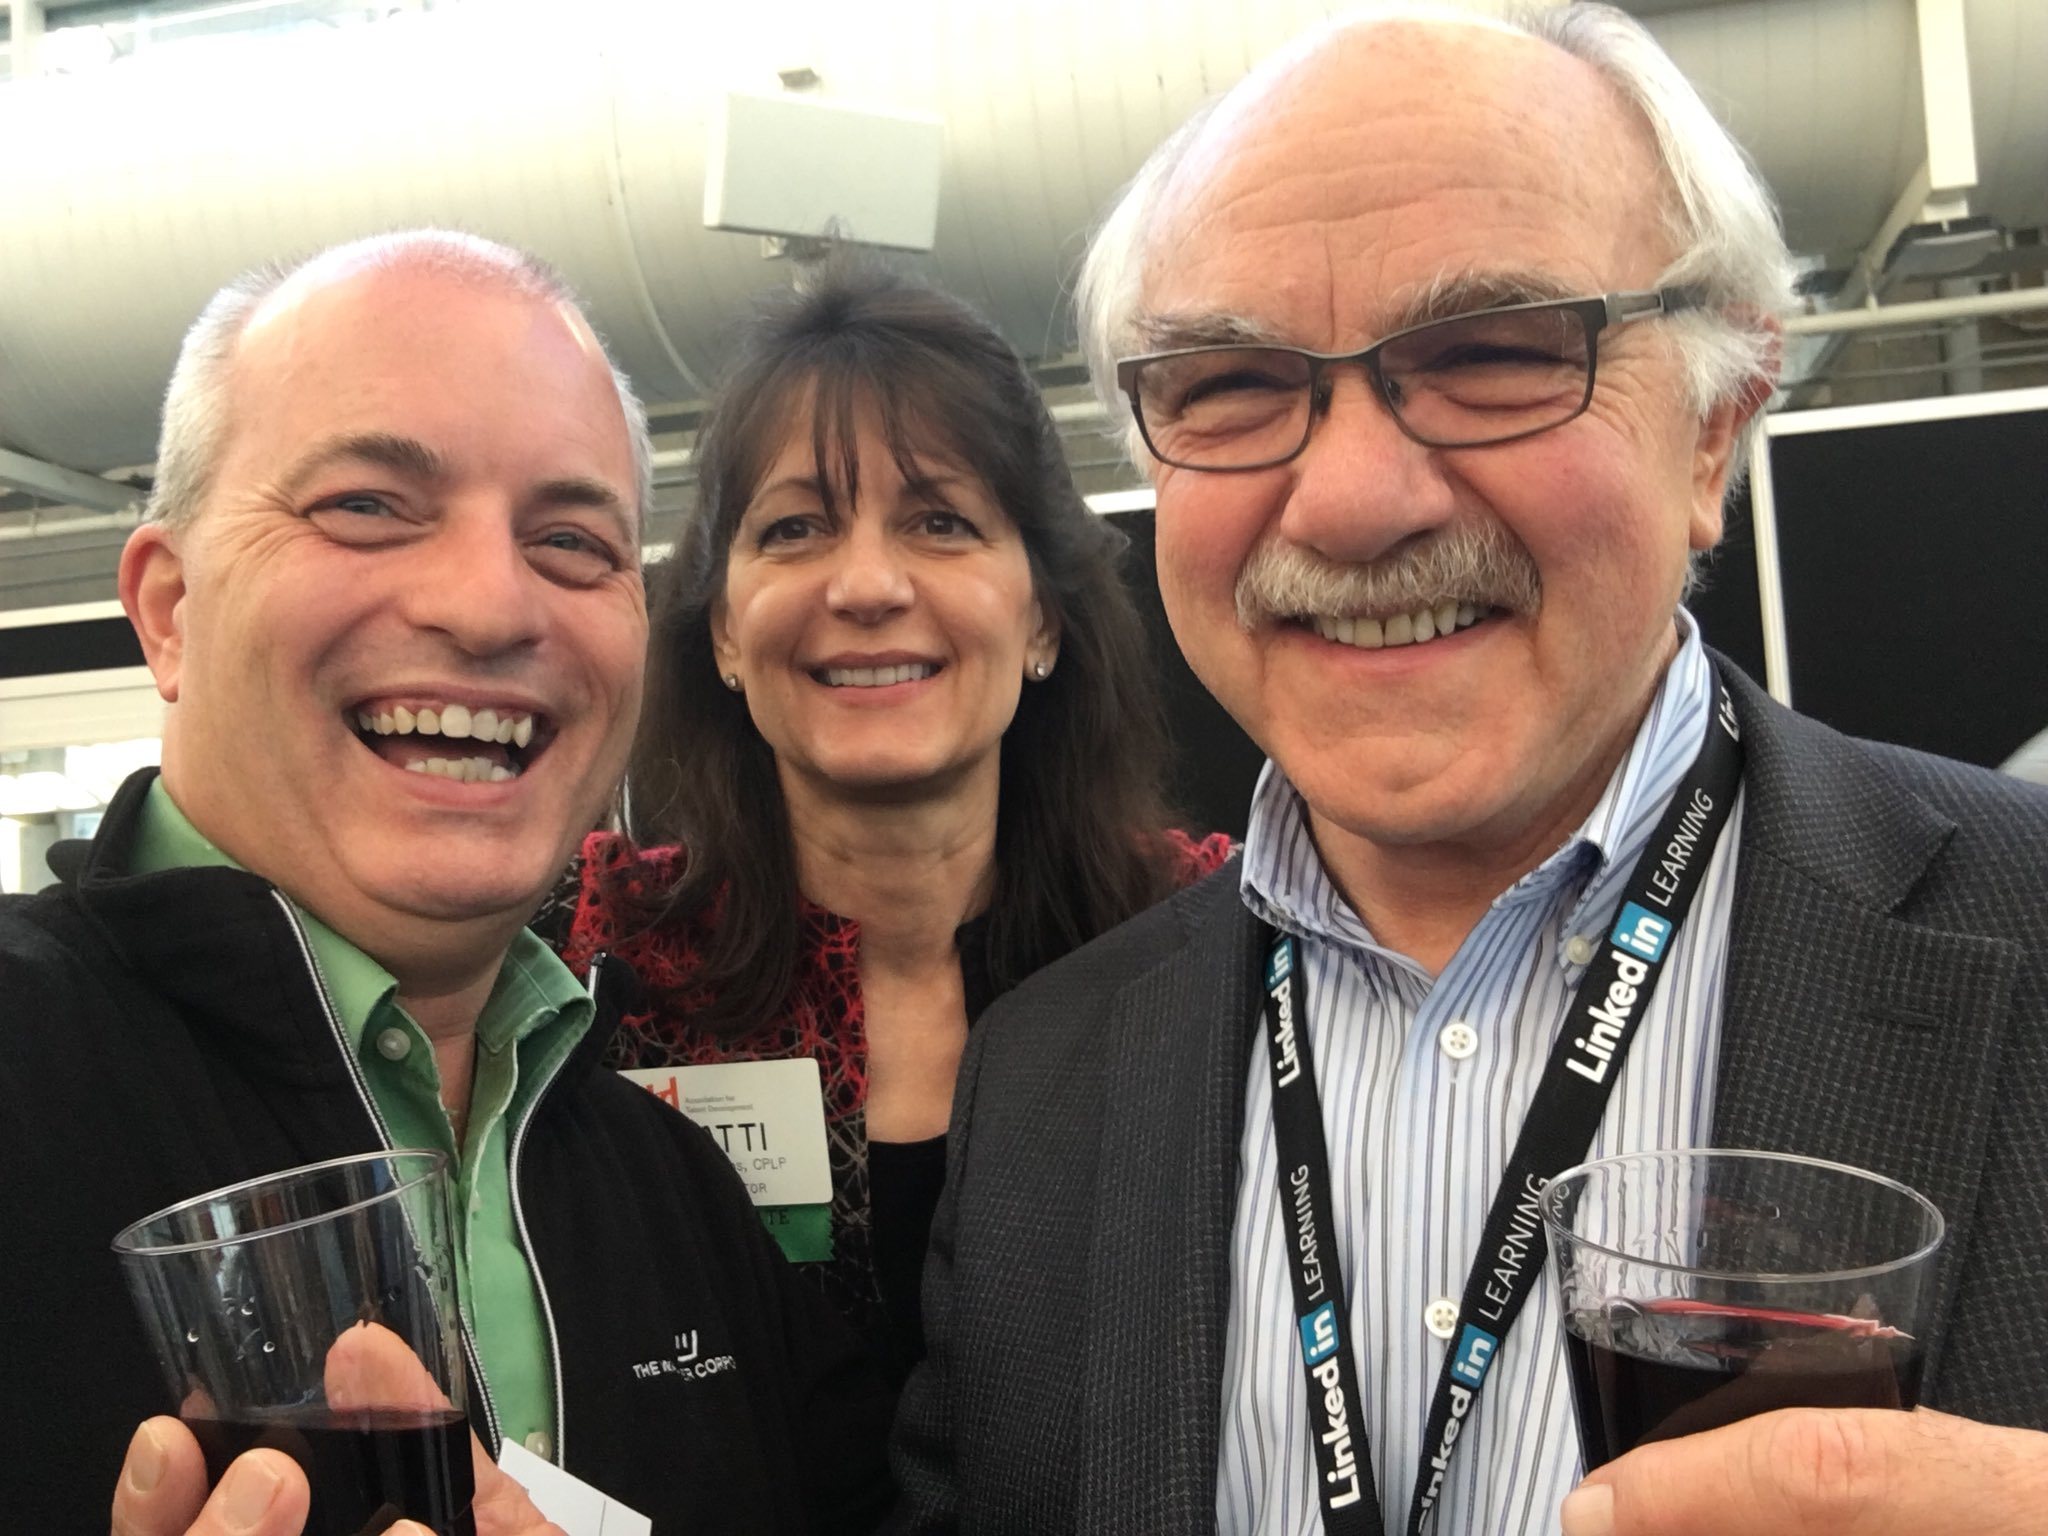 #ATD2018 #ATDReunionSelfie sharing a light-hearted moment with industry gurus Jack & Patti Phillips @ROI_Institute https://t.co/zZLhVtvl5b